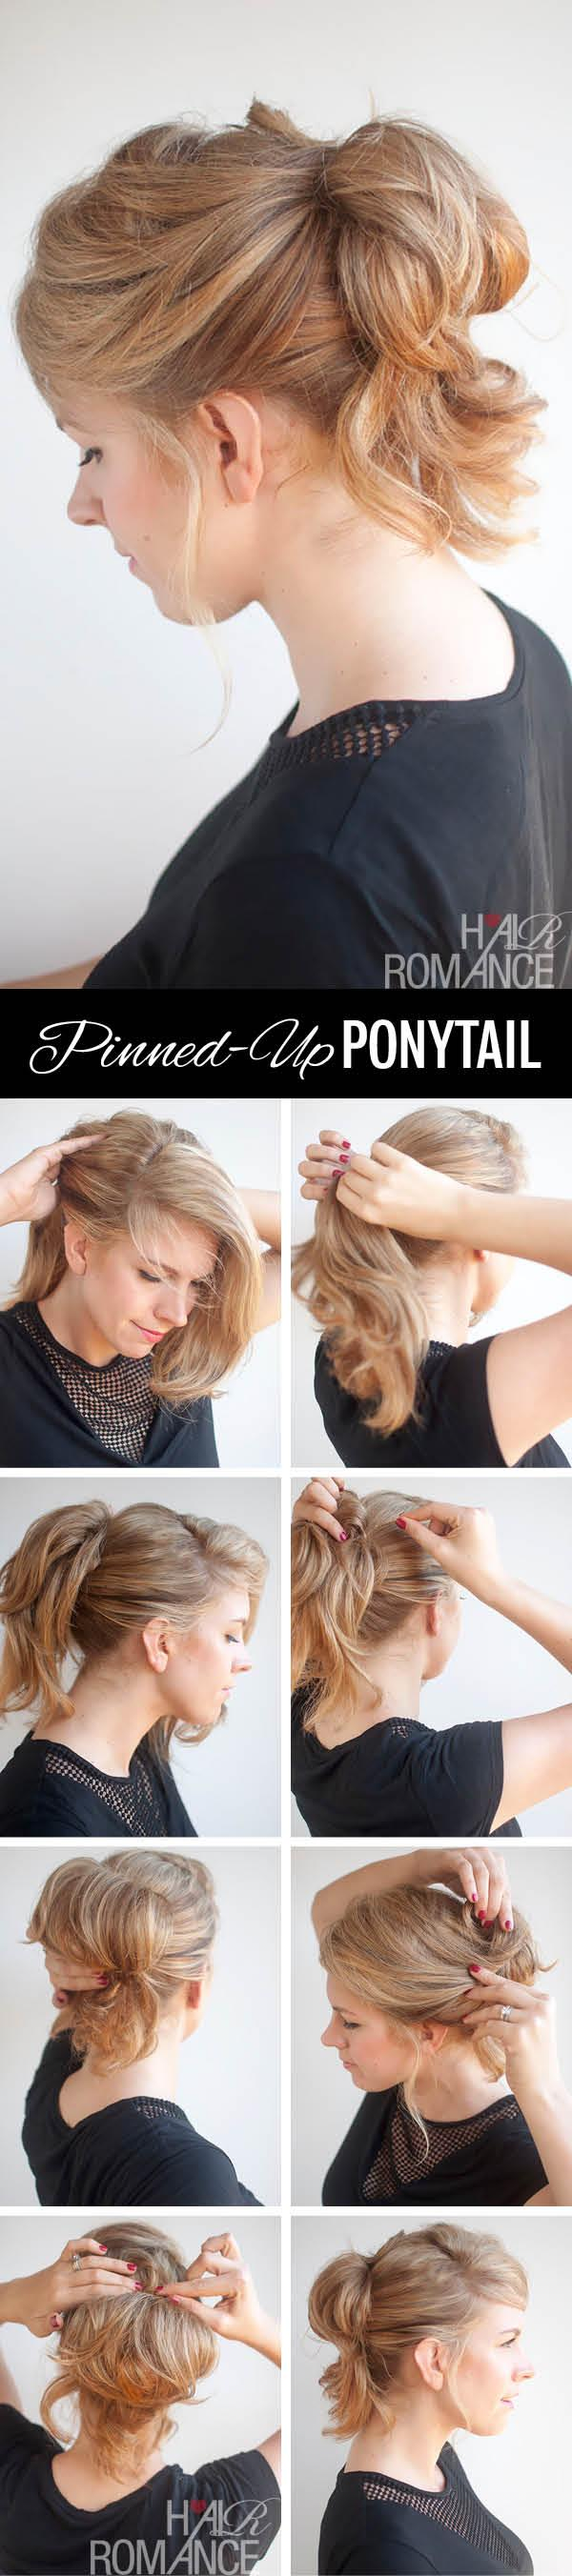 Hair-Romance-the-pinned-up-ponytail-hairstyle-tutorial (Copy)